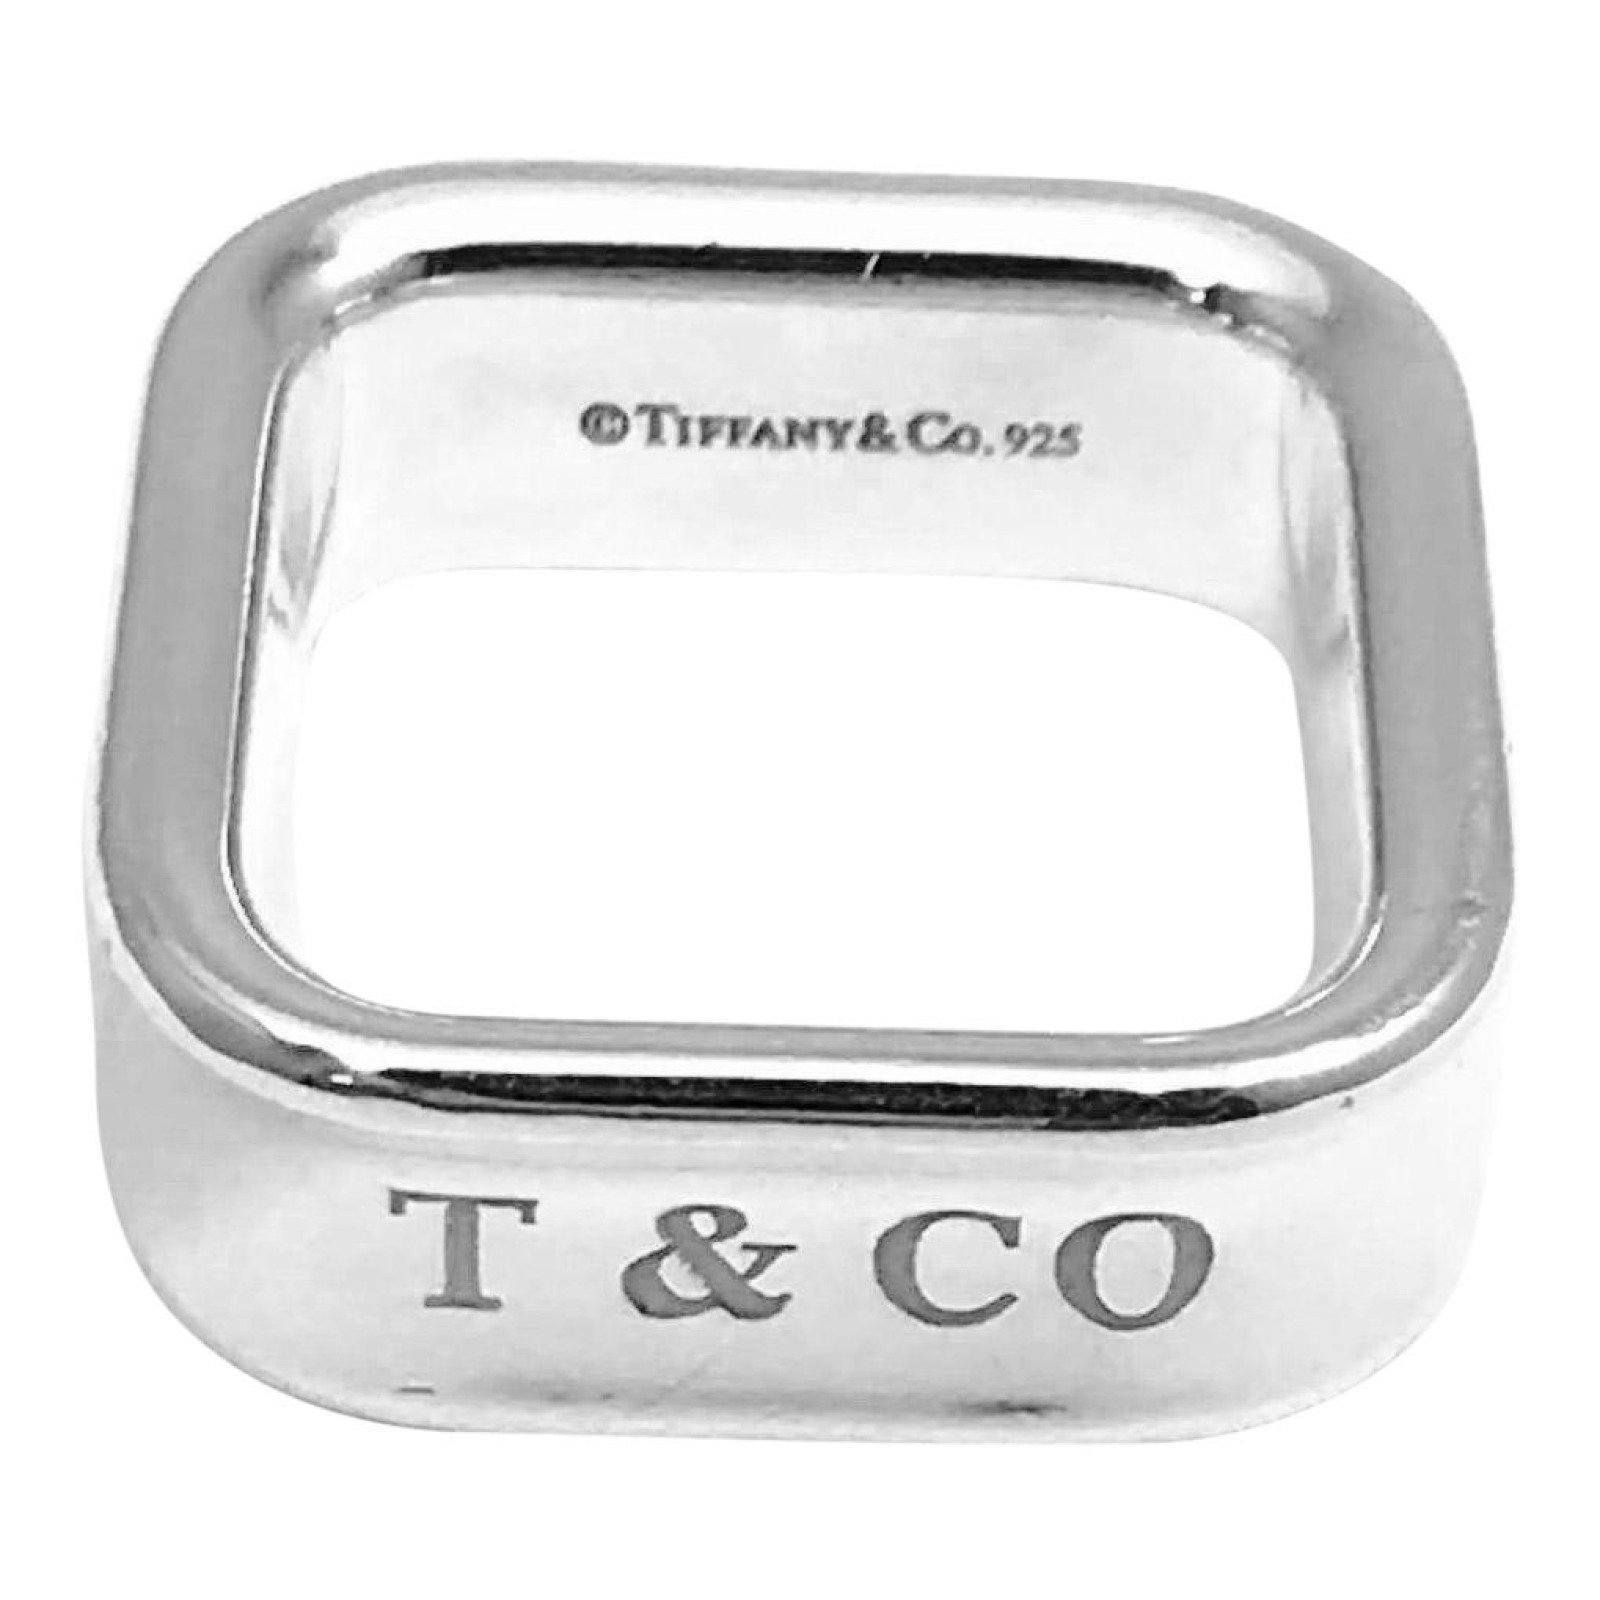 af655d9b1 Tiffany & Co. 1837 Square Ring in Sterling Silver– Oliver Jewellery